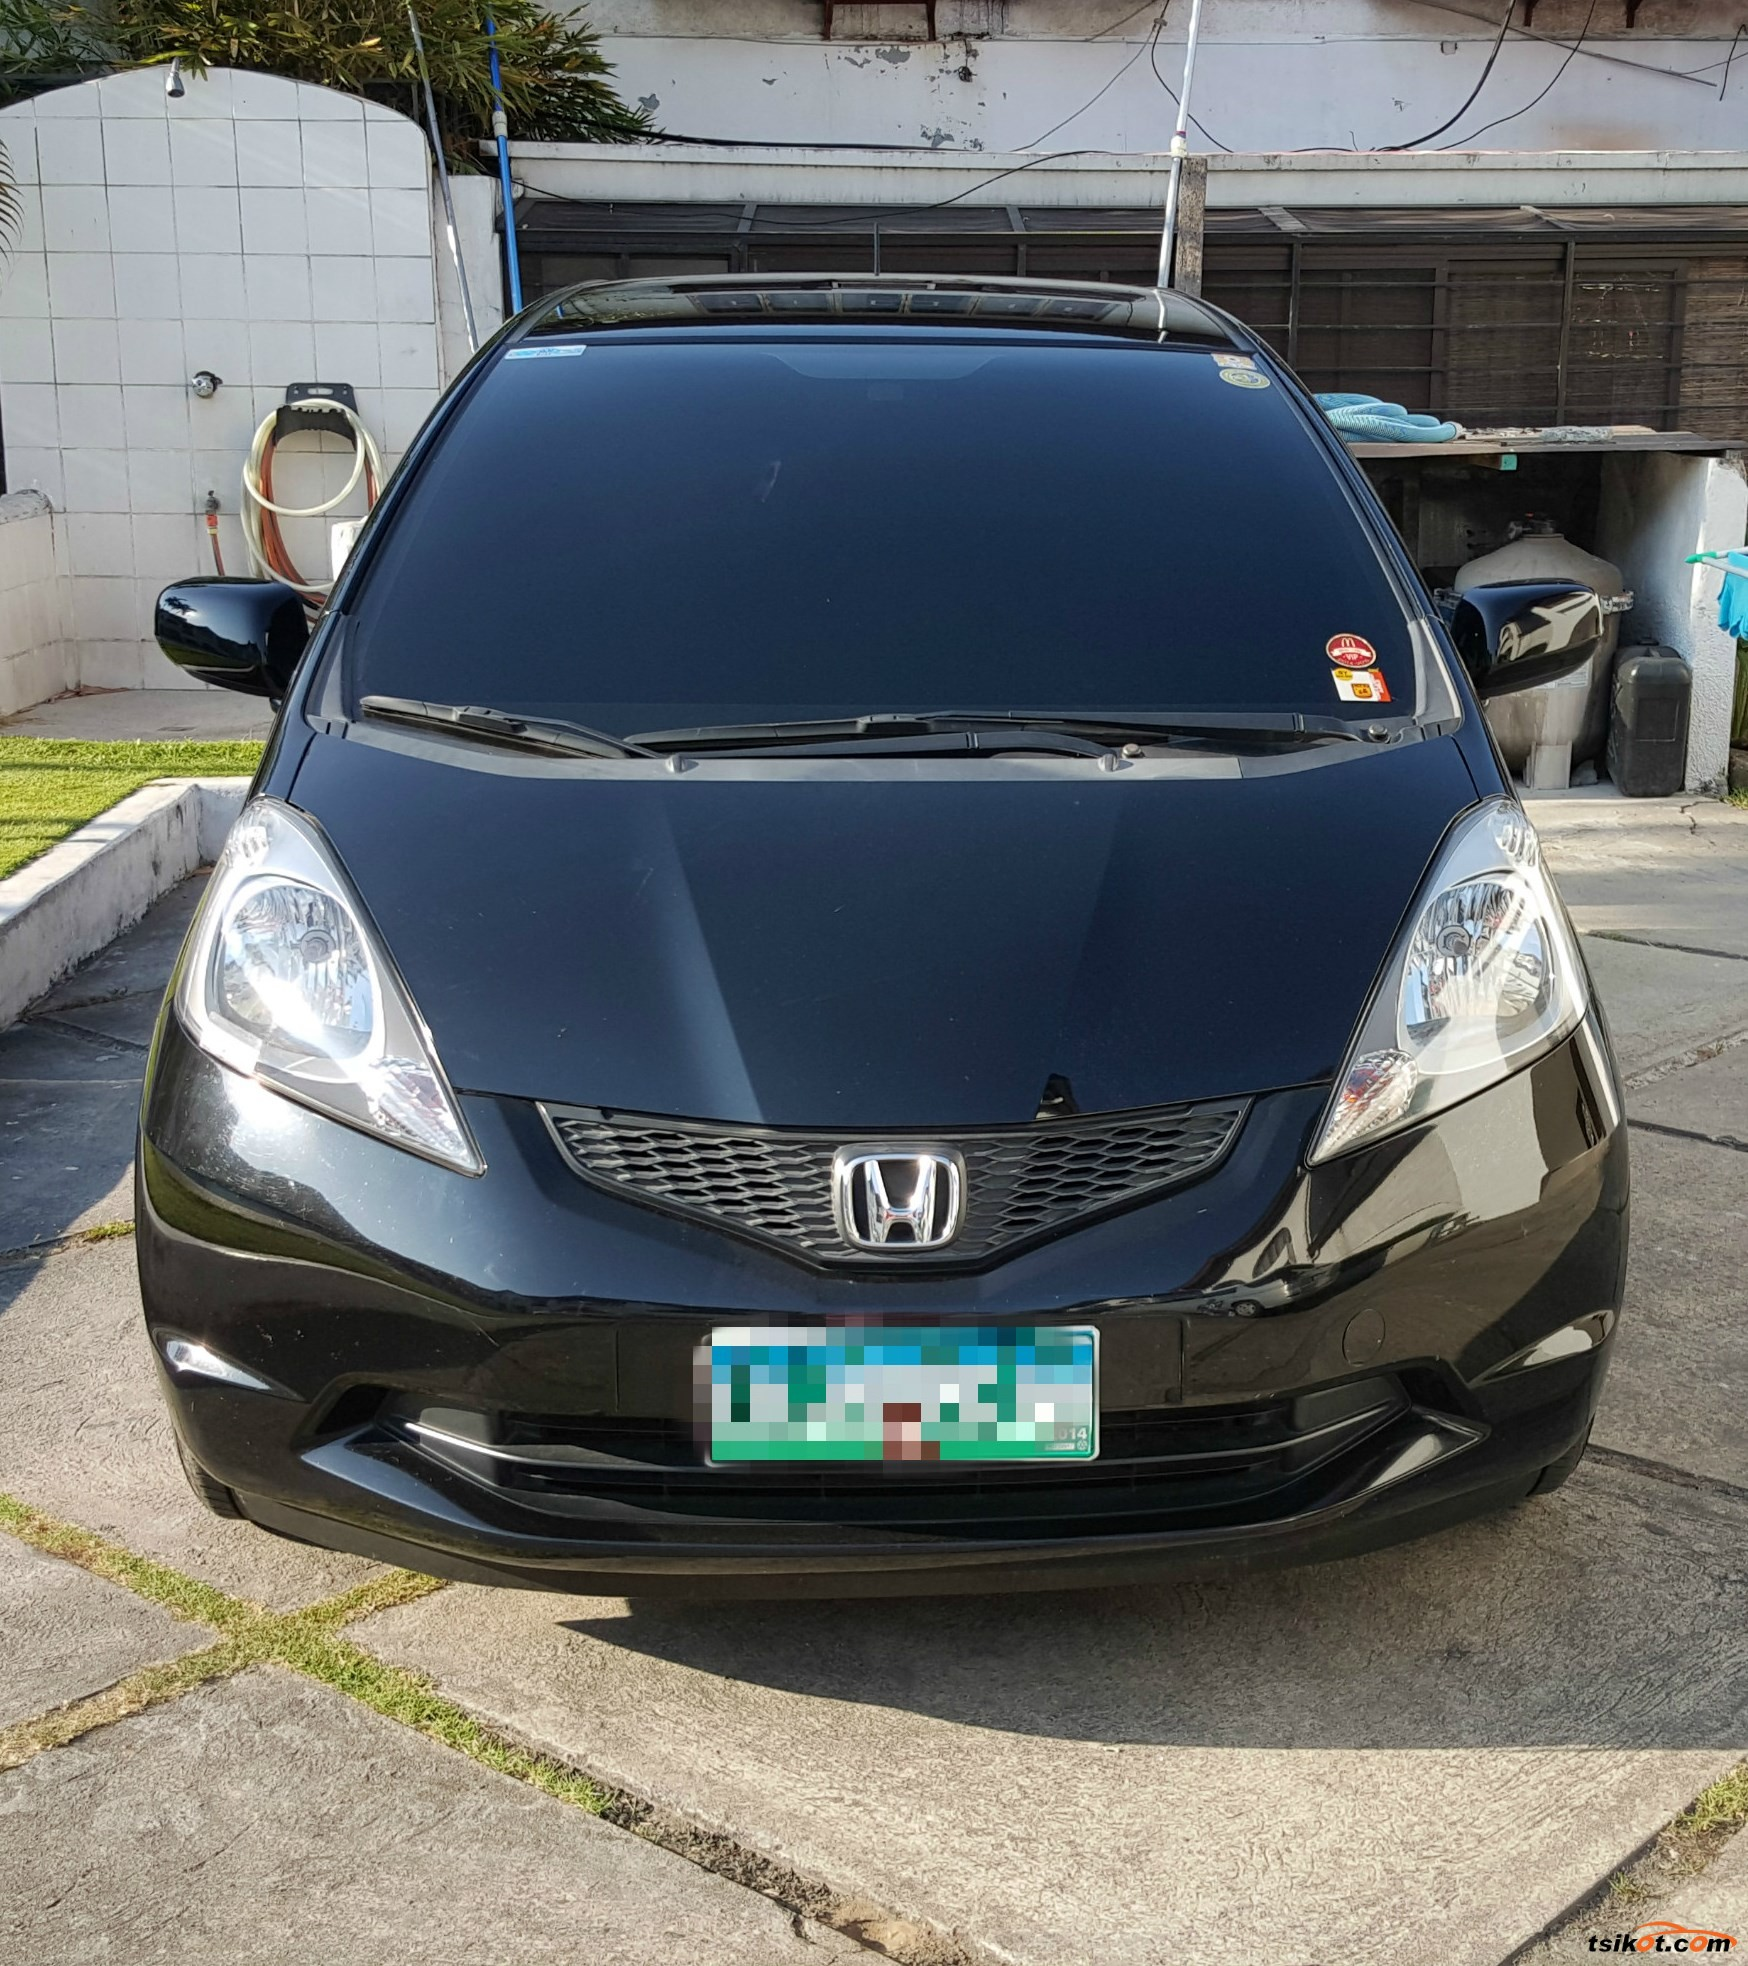 honda jazz 2010 car for sale metro manila philippines. Black Bedroom Furniture Sets. Home Design Ideas